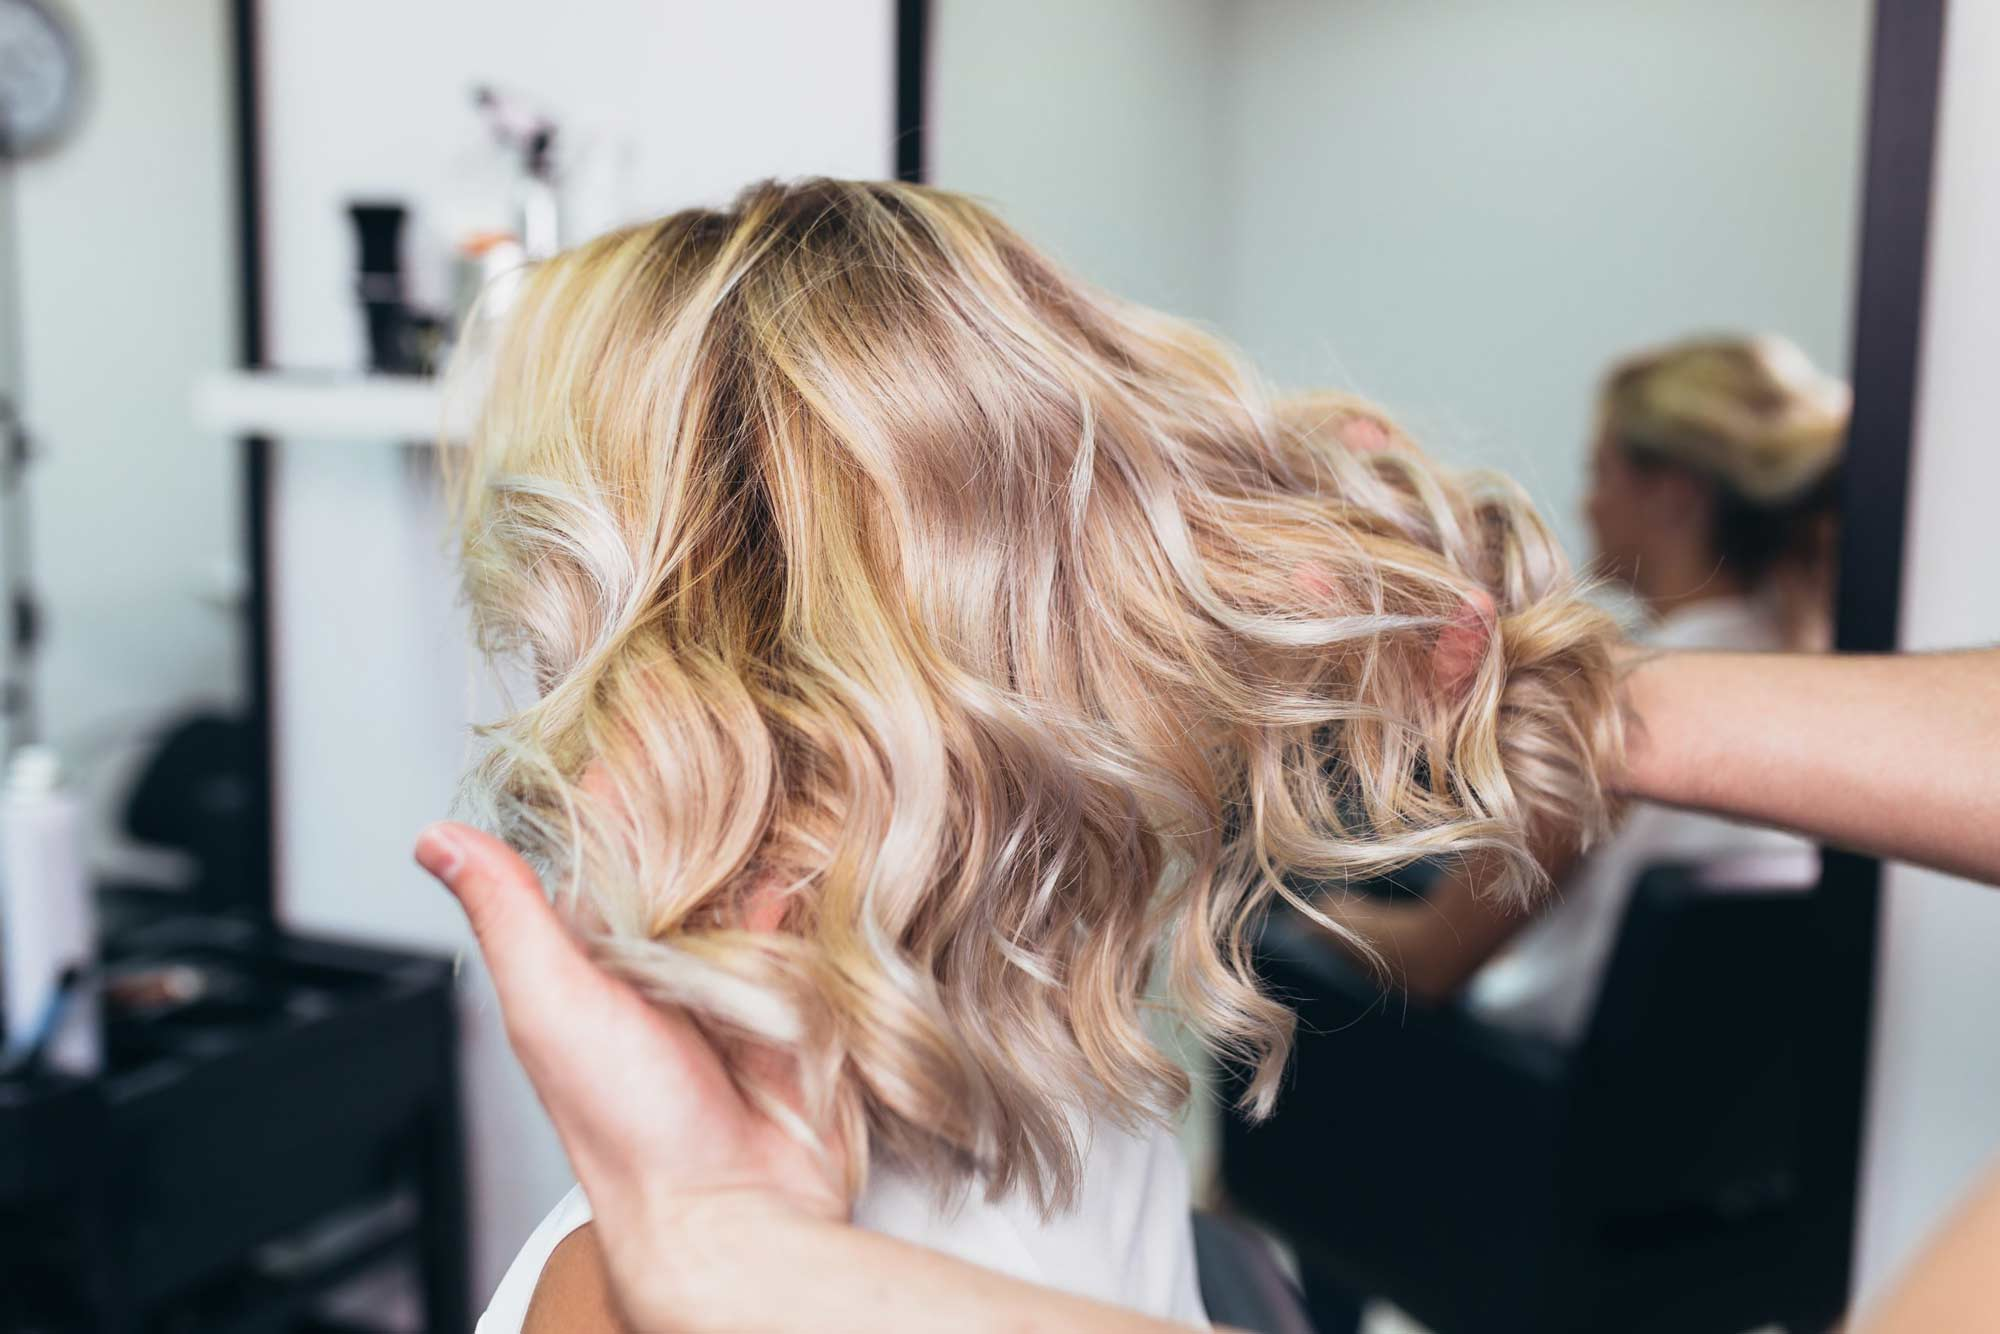 Colored Hair? Try These Tips to Keep 'Em Shiny & Healthy